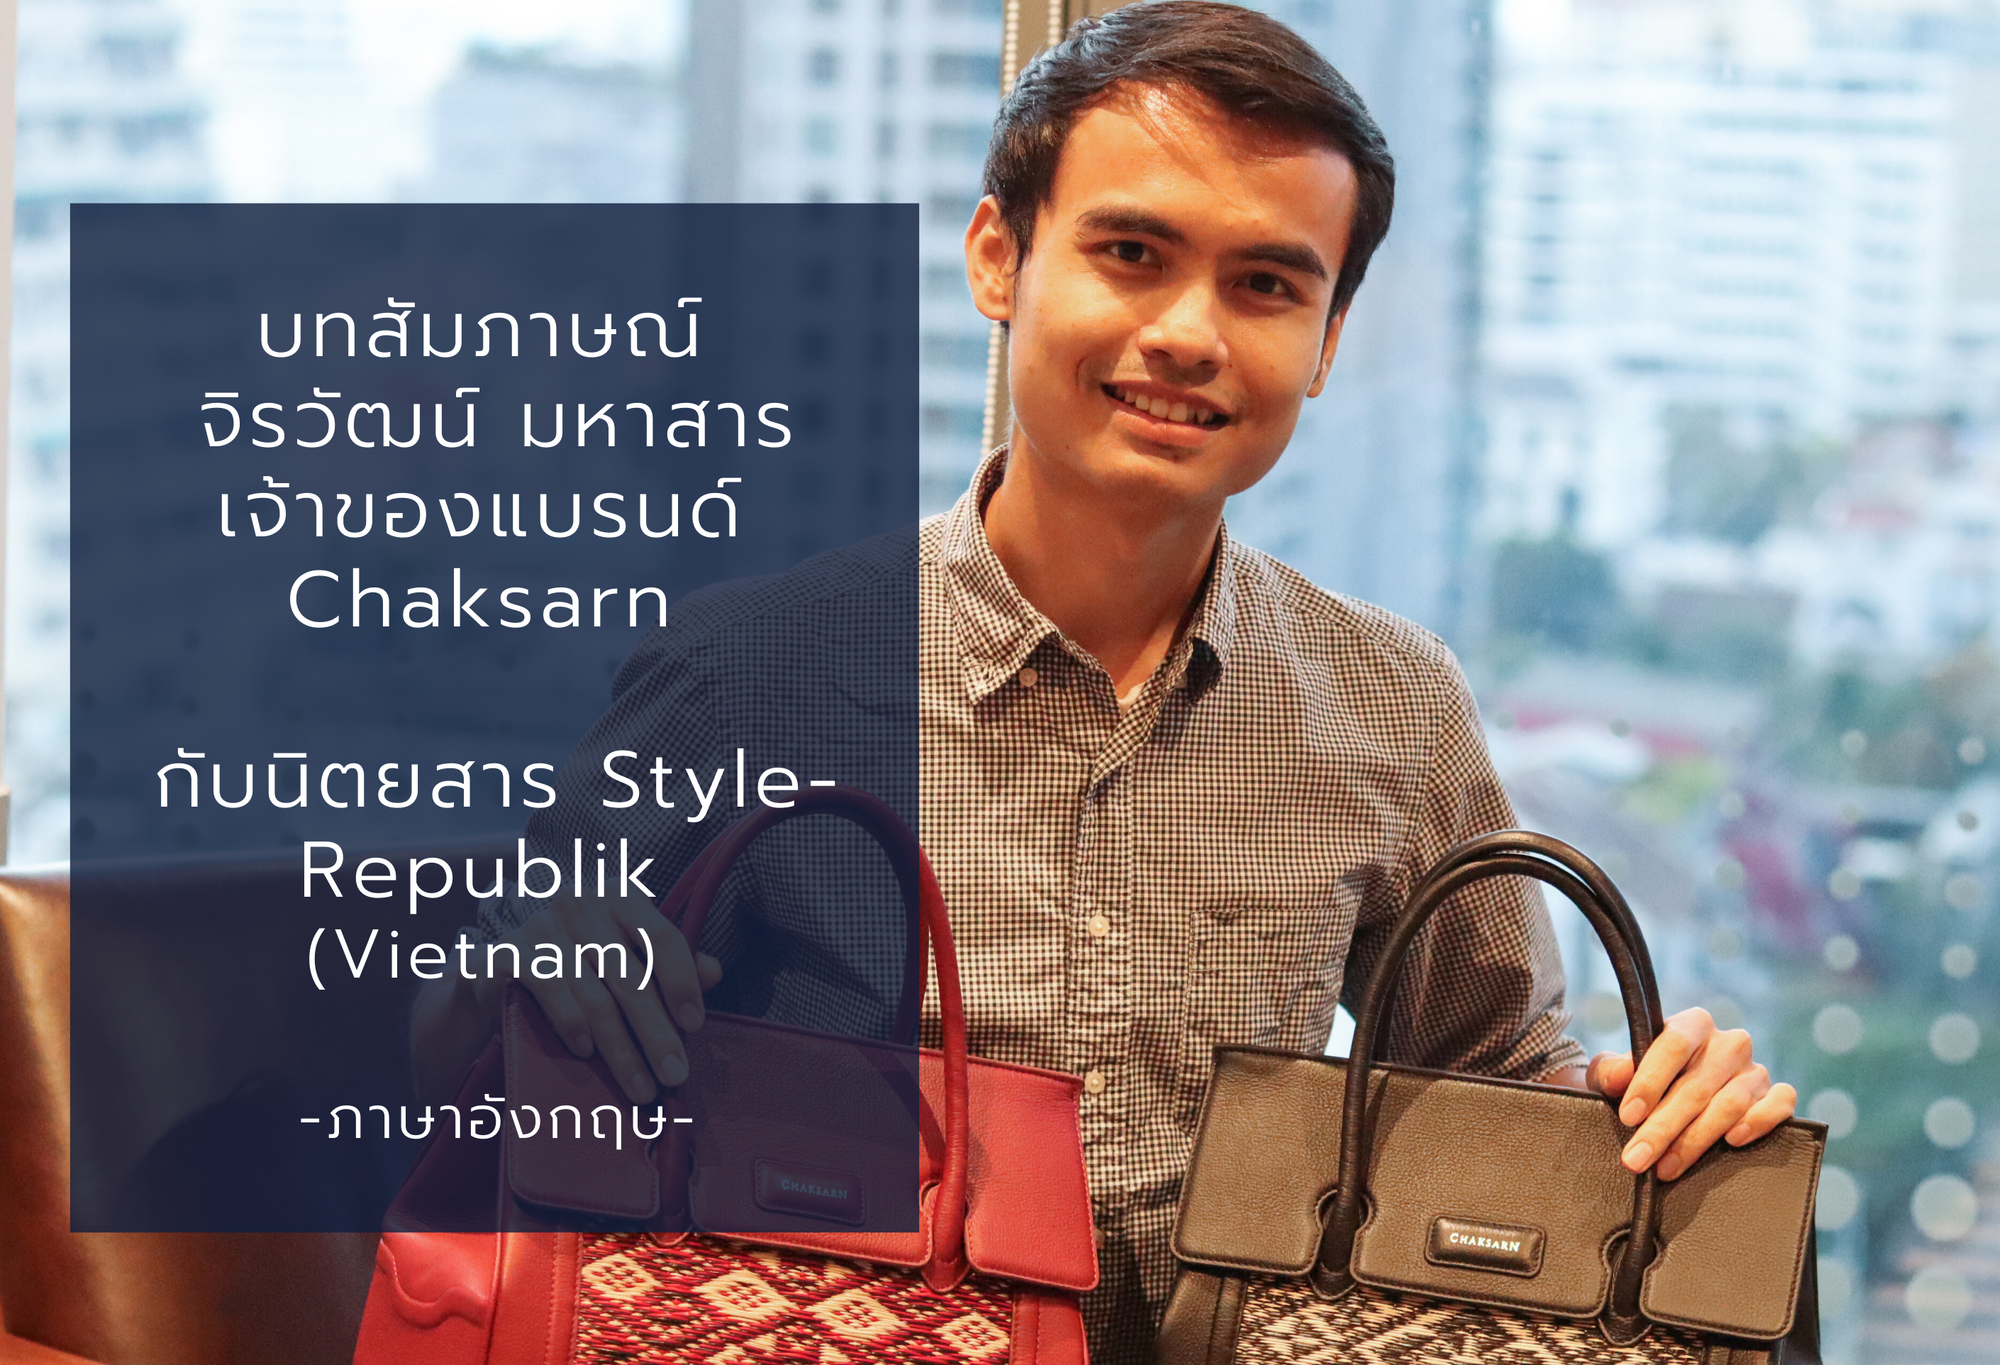 Interview Jirawat: The Founder of Chaksarn, a Sustainable Thai Brand by Style-Republik